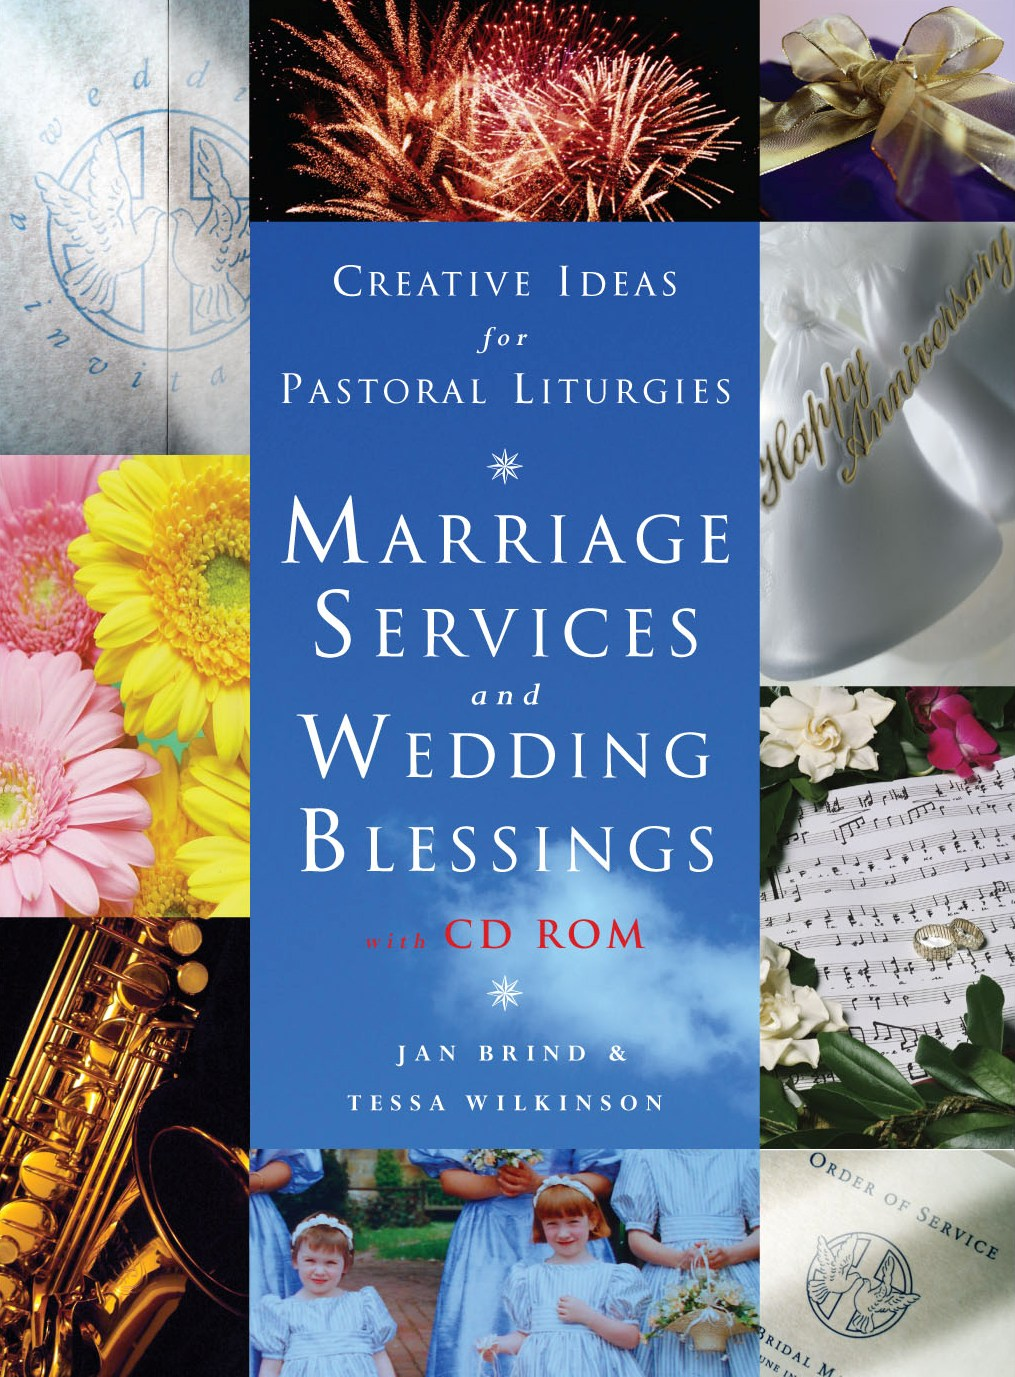 Creative Ideas for Pastoral Liturgy: Marriage Services and Wedding Blessings